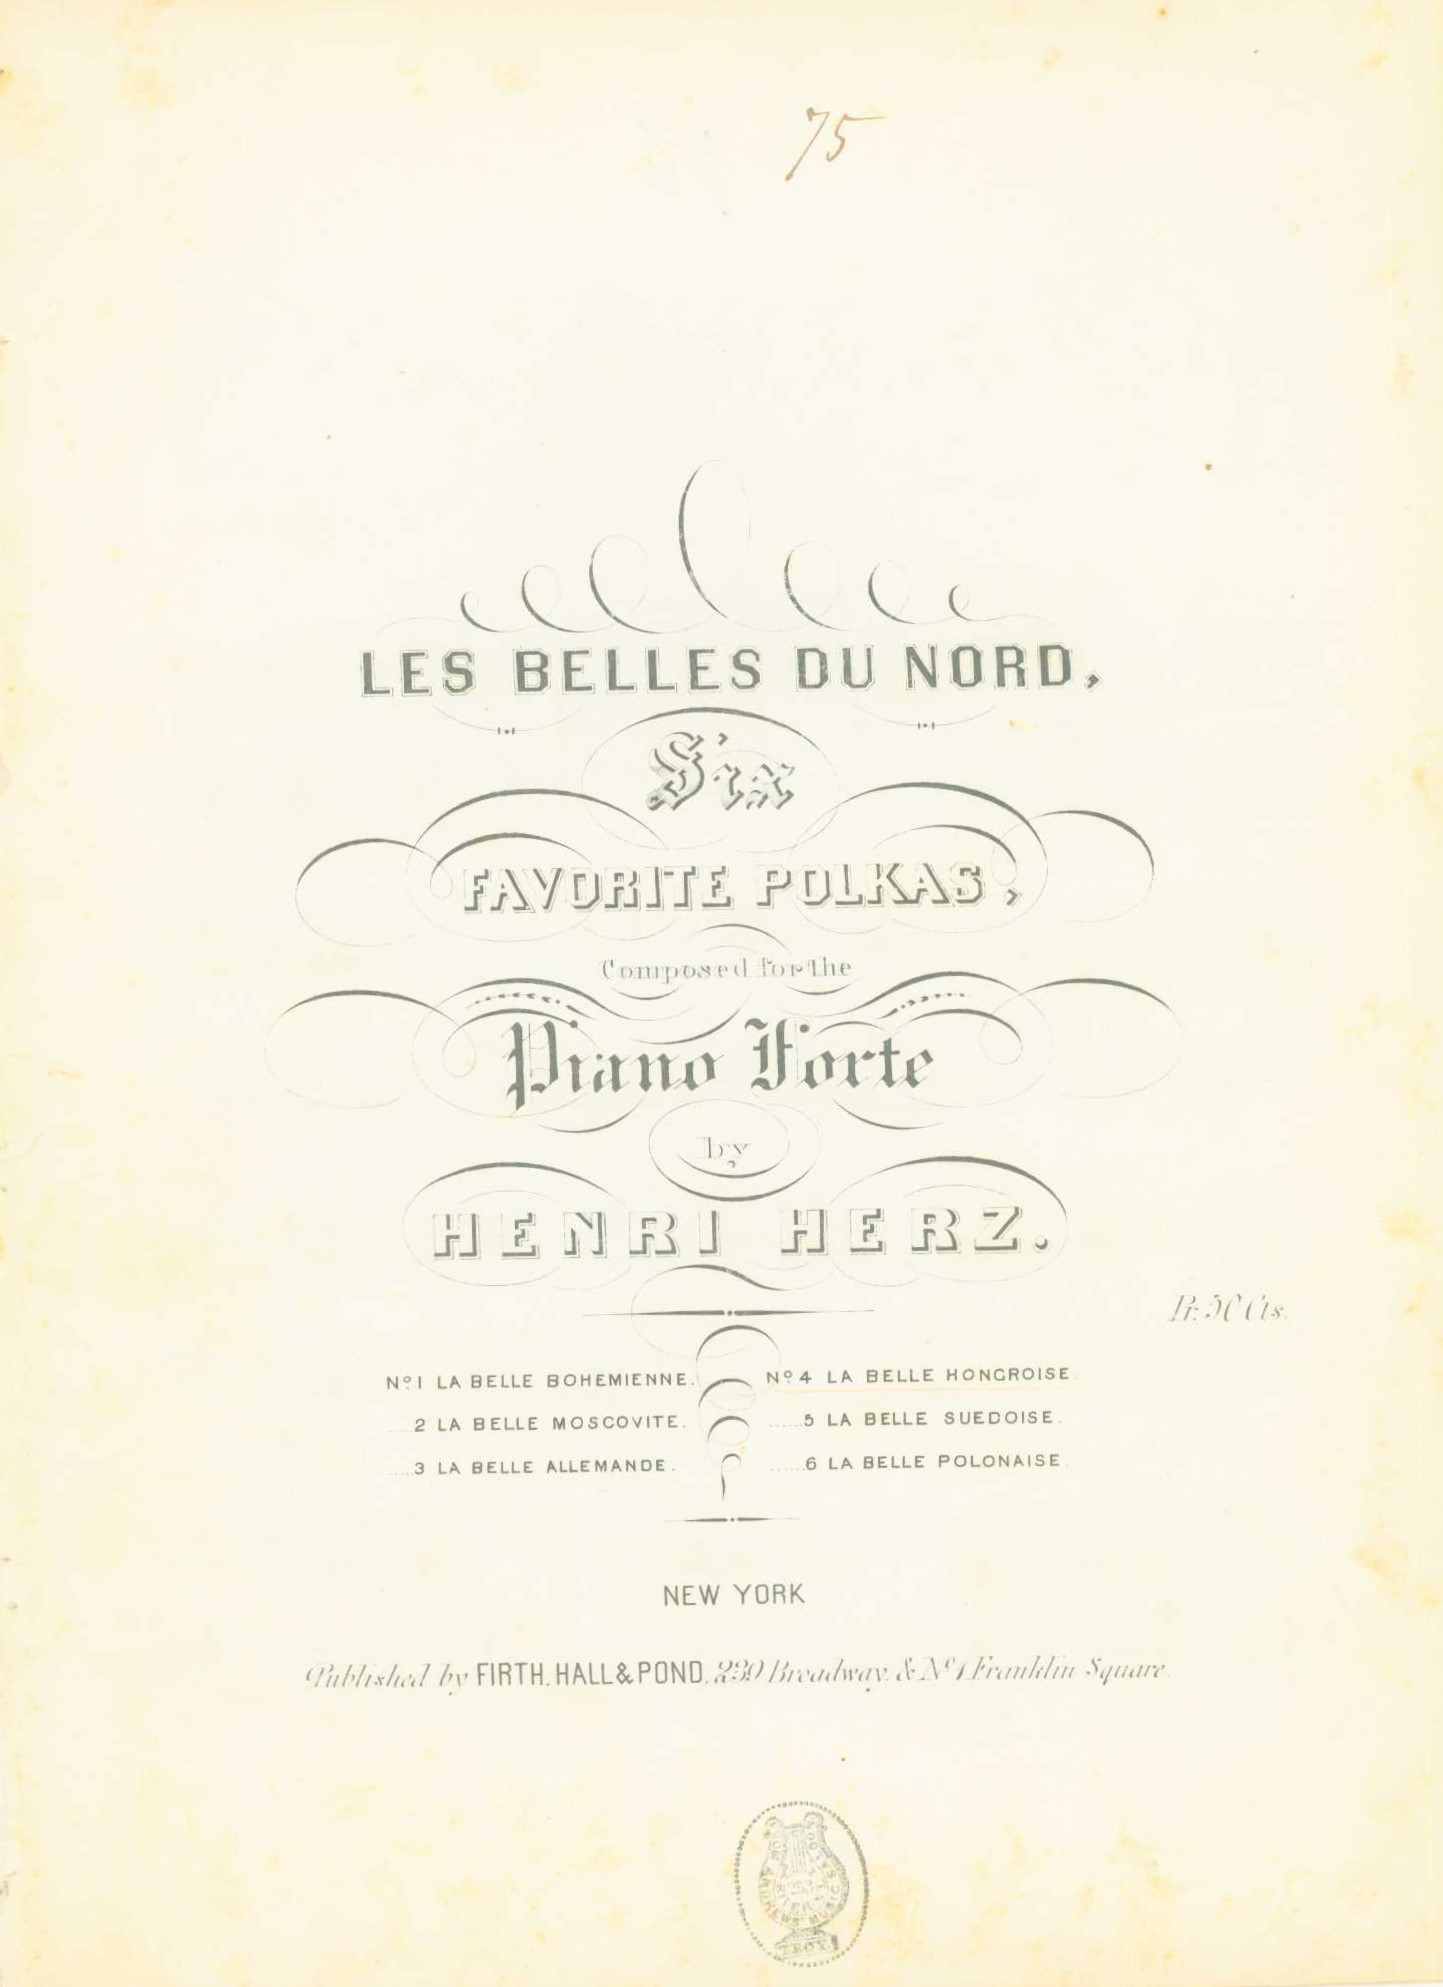 Herz, Henri - Les Belles Du Nord, Six Favorite Polkas, Composed For The Piano Forte. - (6613)